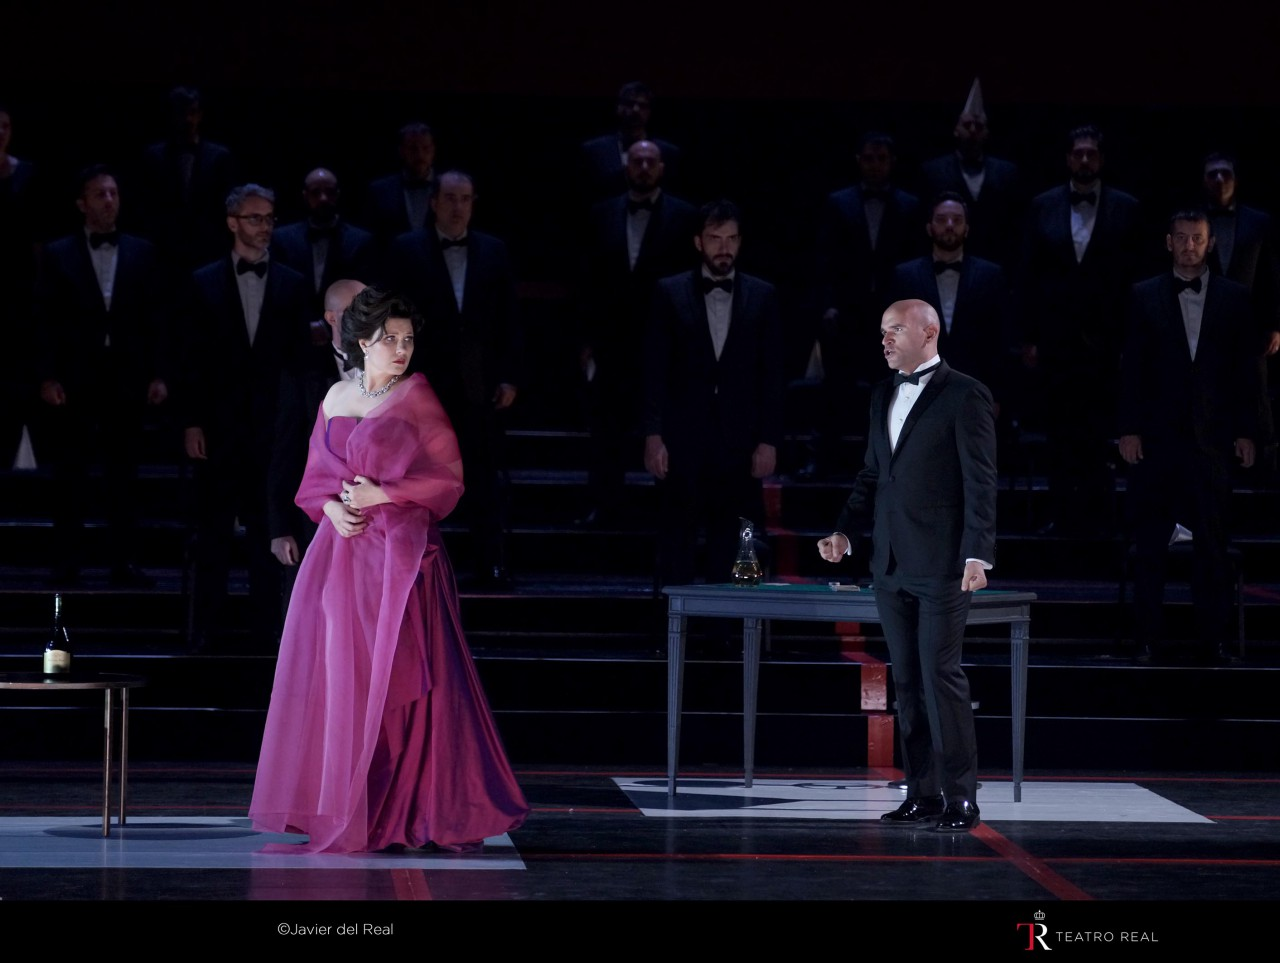 Teatro Real reopens with 'La traviata'.